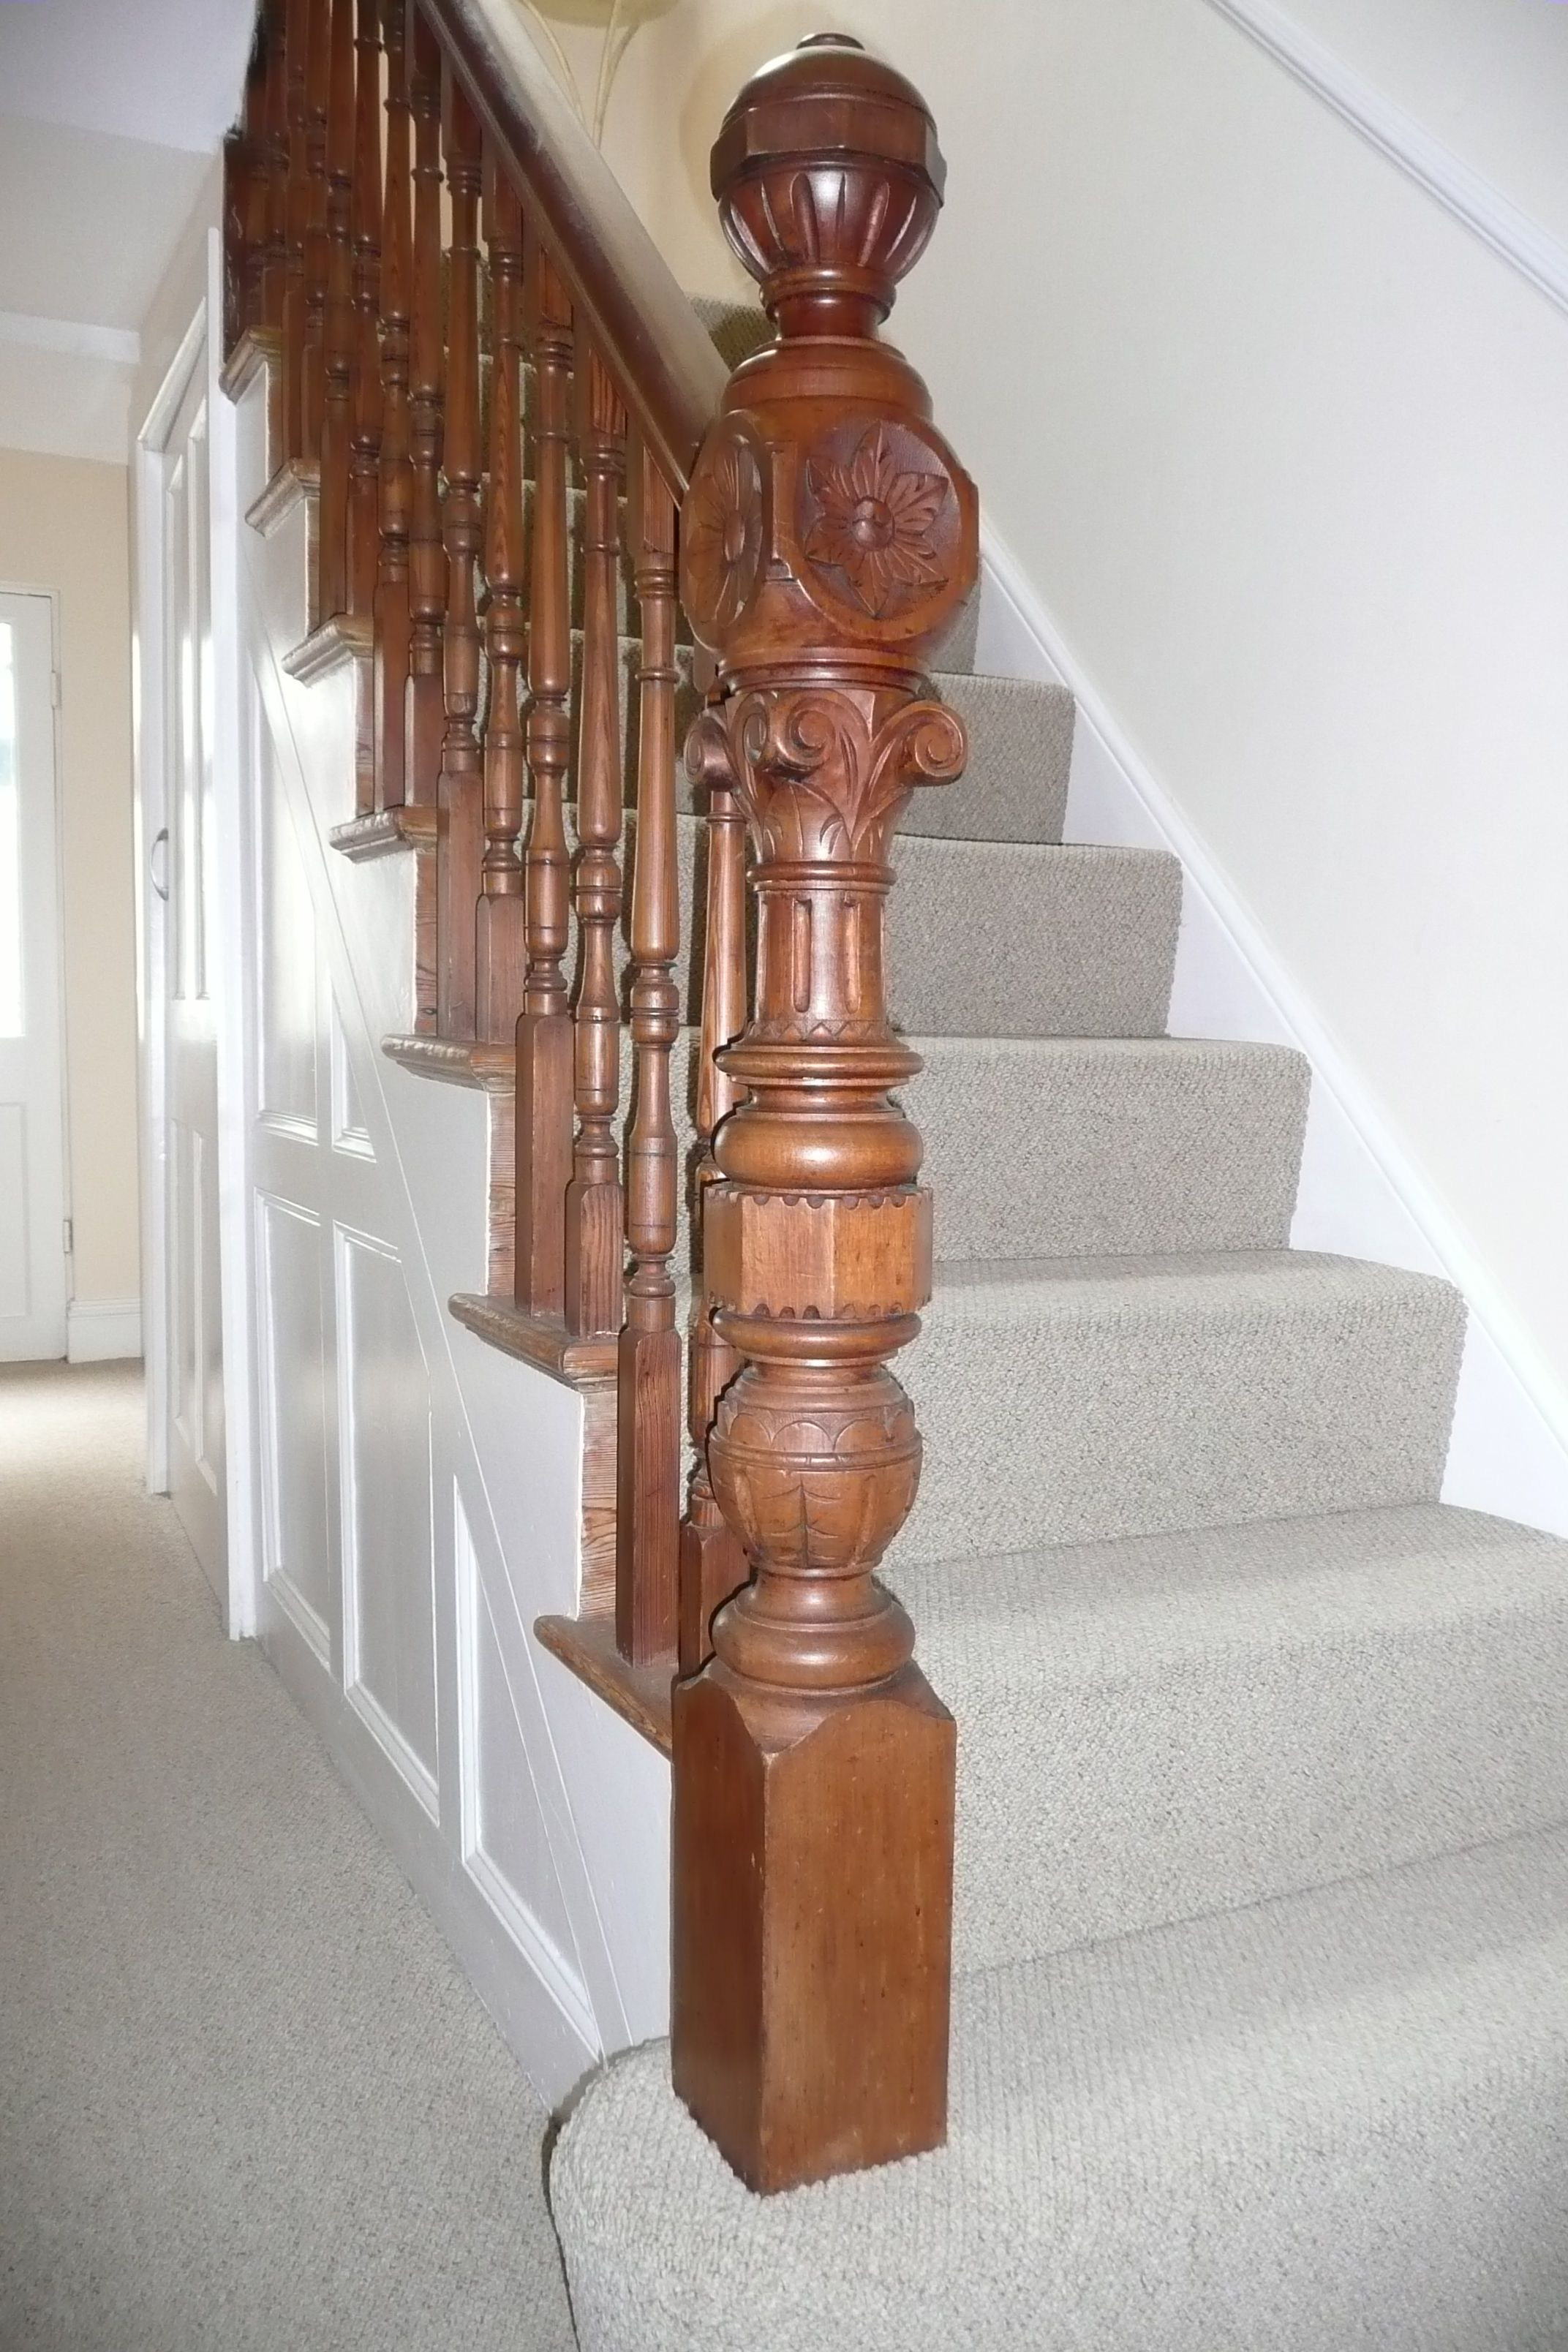 Beautiful Regency Early Victorian Newel Post Victorian Interiors 1 Newel Posts Victorian Interiors Victorian Architecture